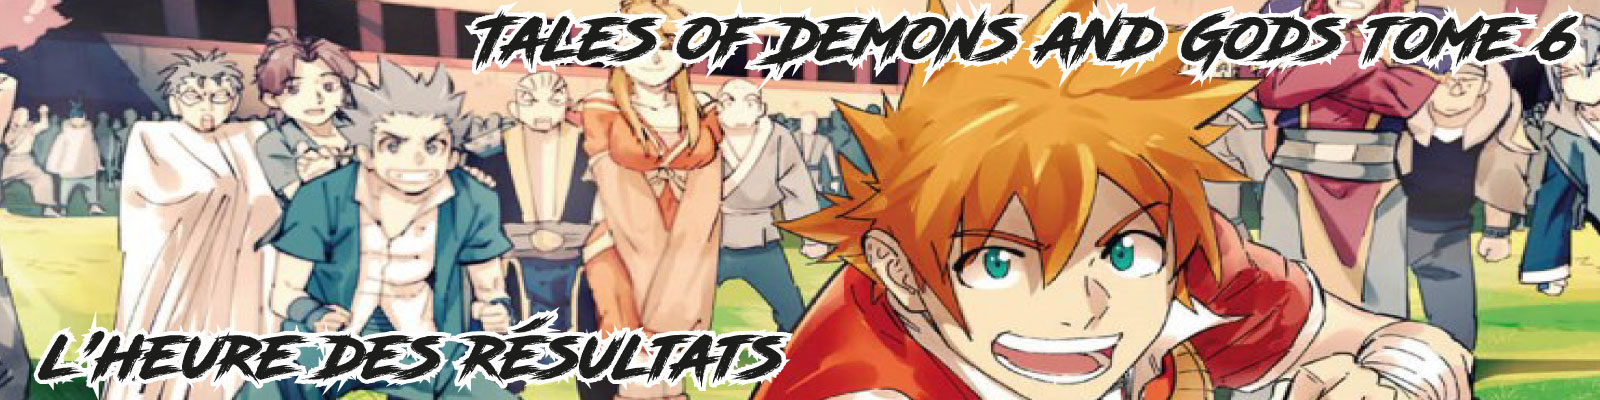 Tales of Demons and Gods T6